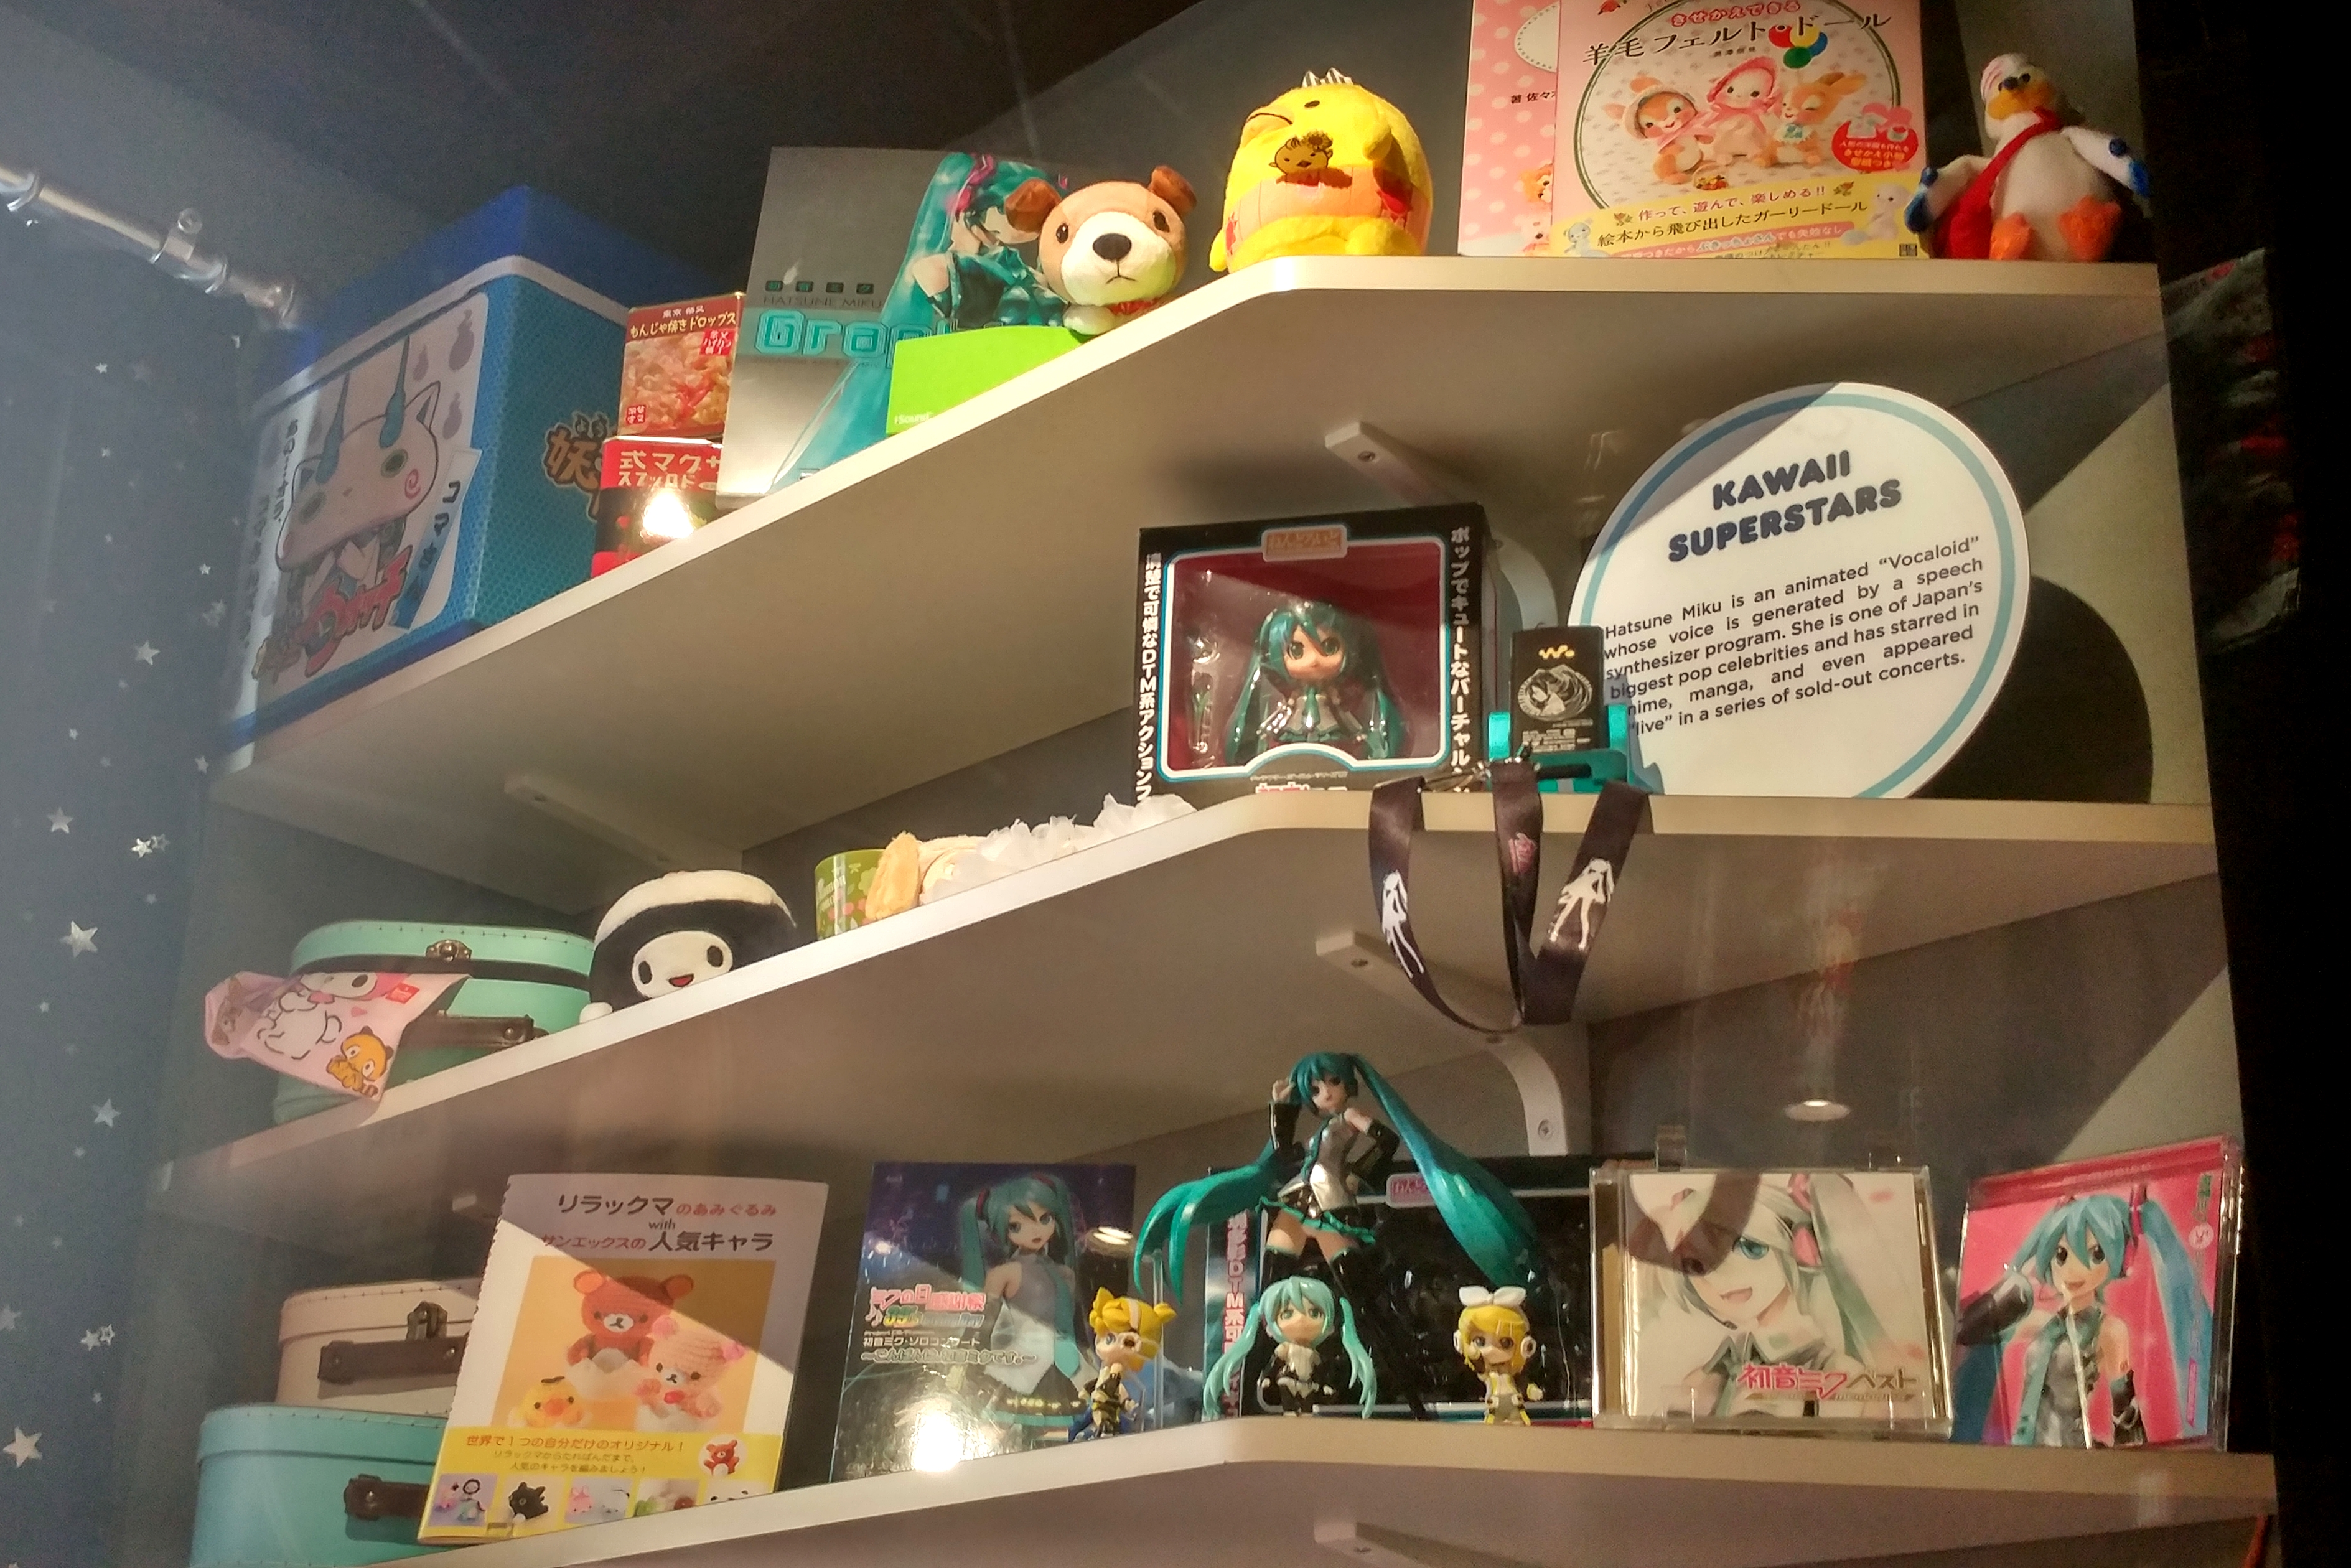 Whoever designed this exhibit must really love Hatsune Miku.